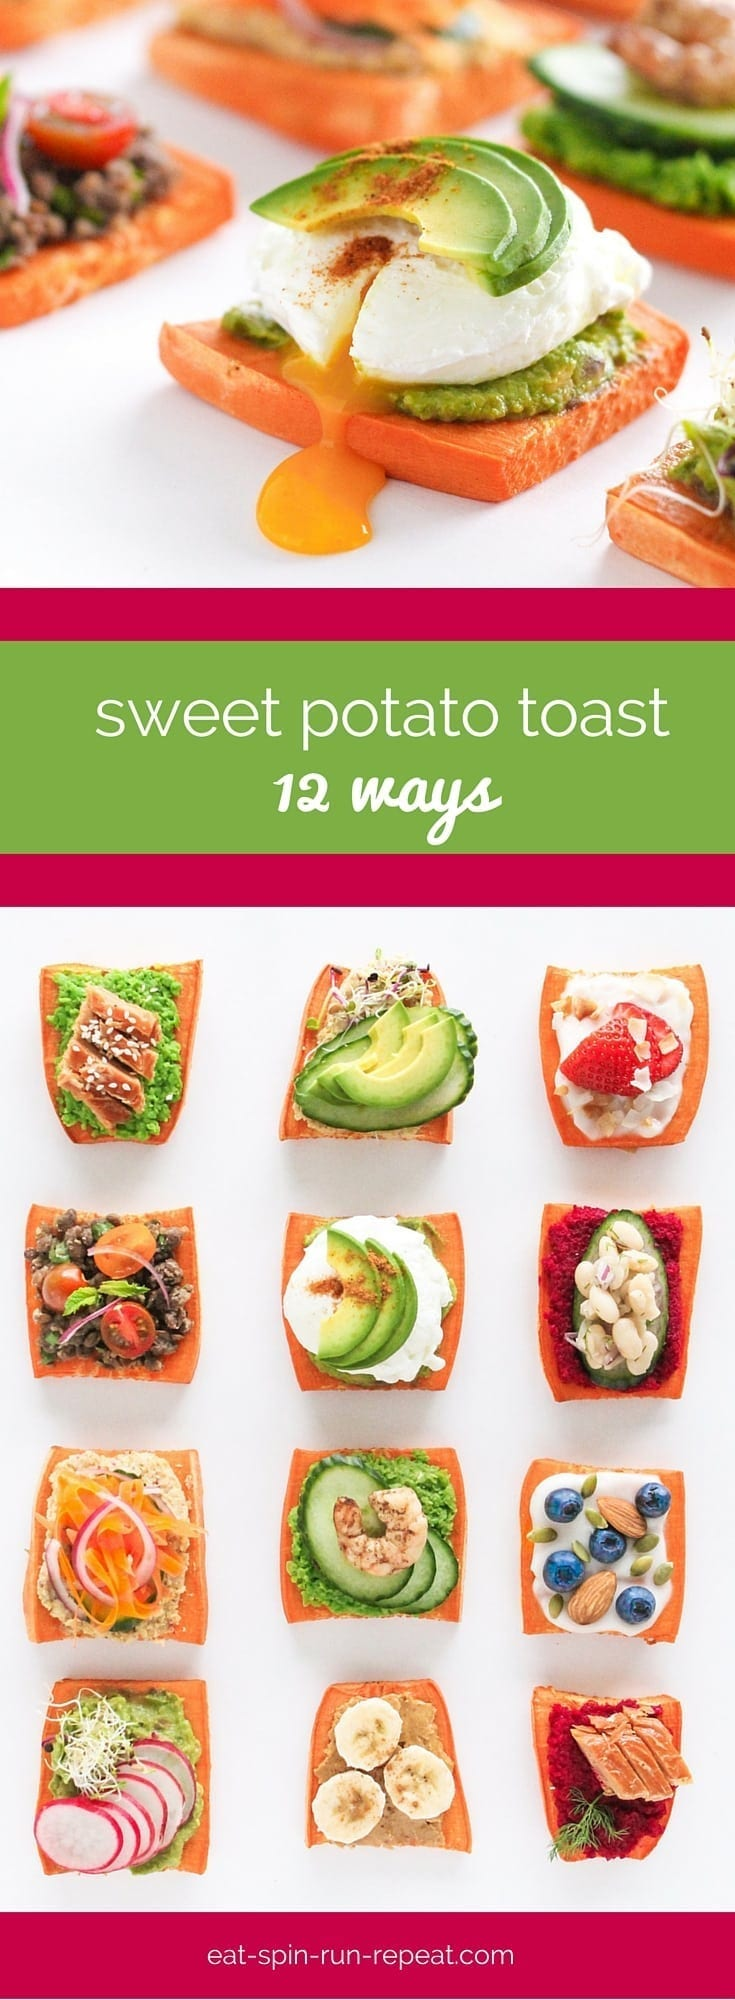 Trending Now - Sweet Potato Toast - Eat Spin Run Repeat